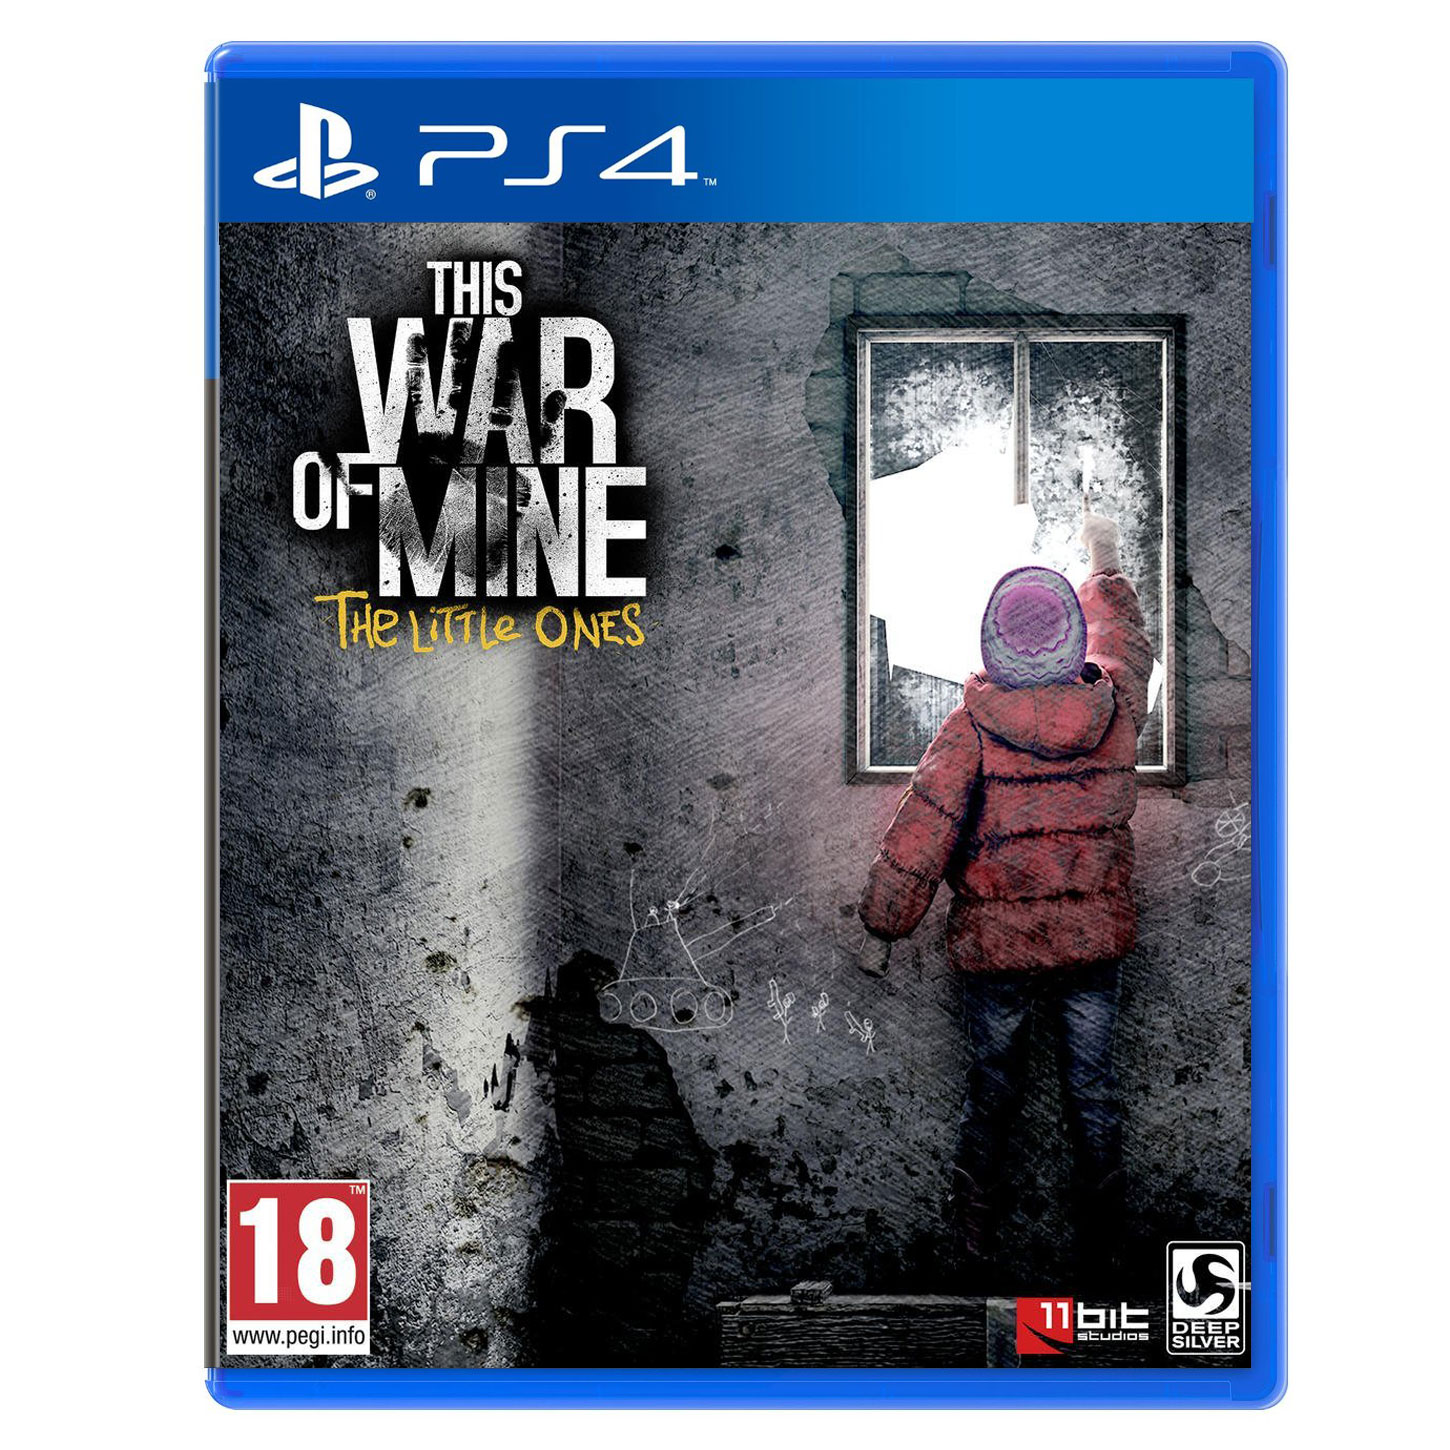 Jeux PS4 This War of Mine : The Little Ones (PS4) This War of Mine : The Little Ones (PS4)